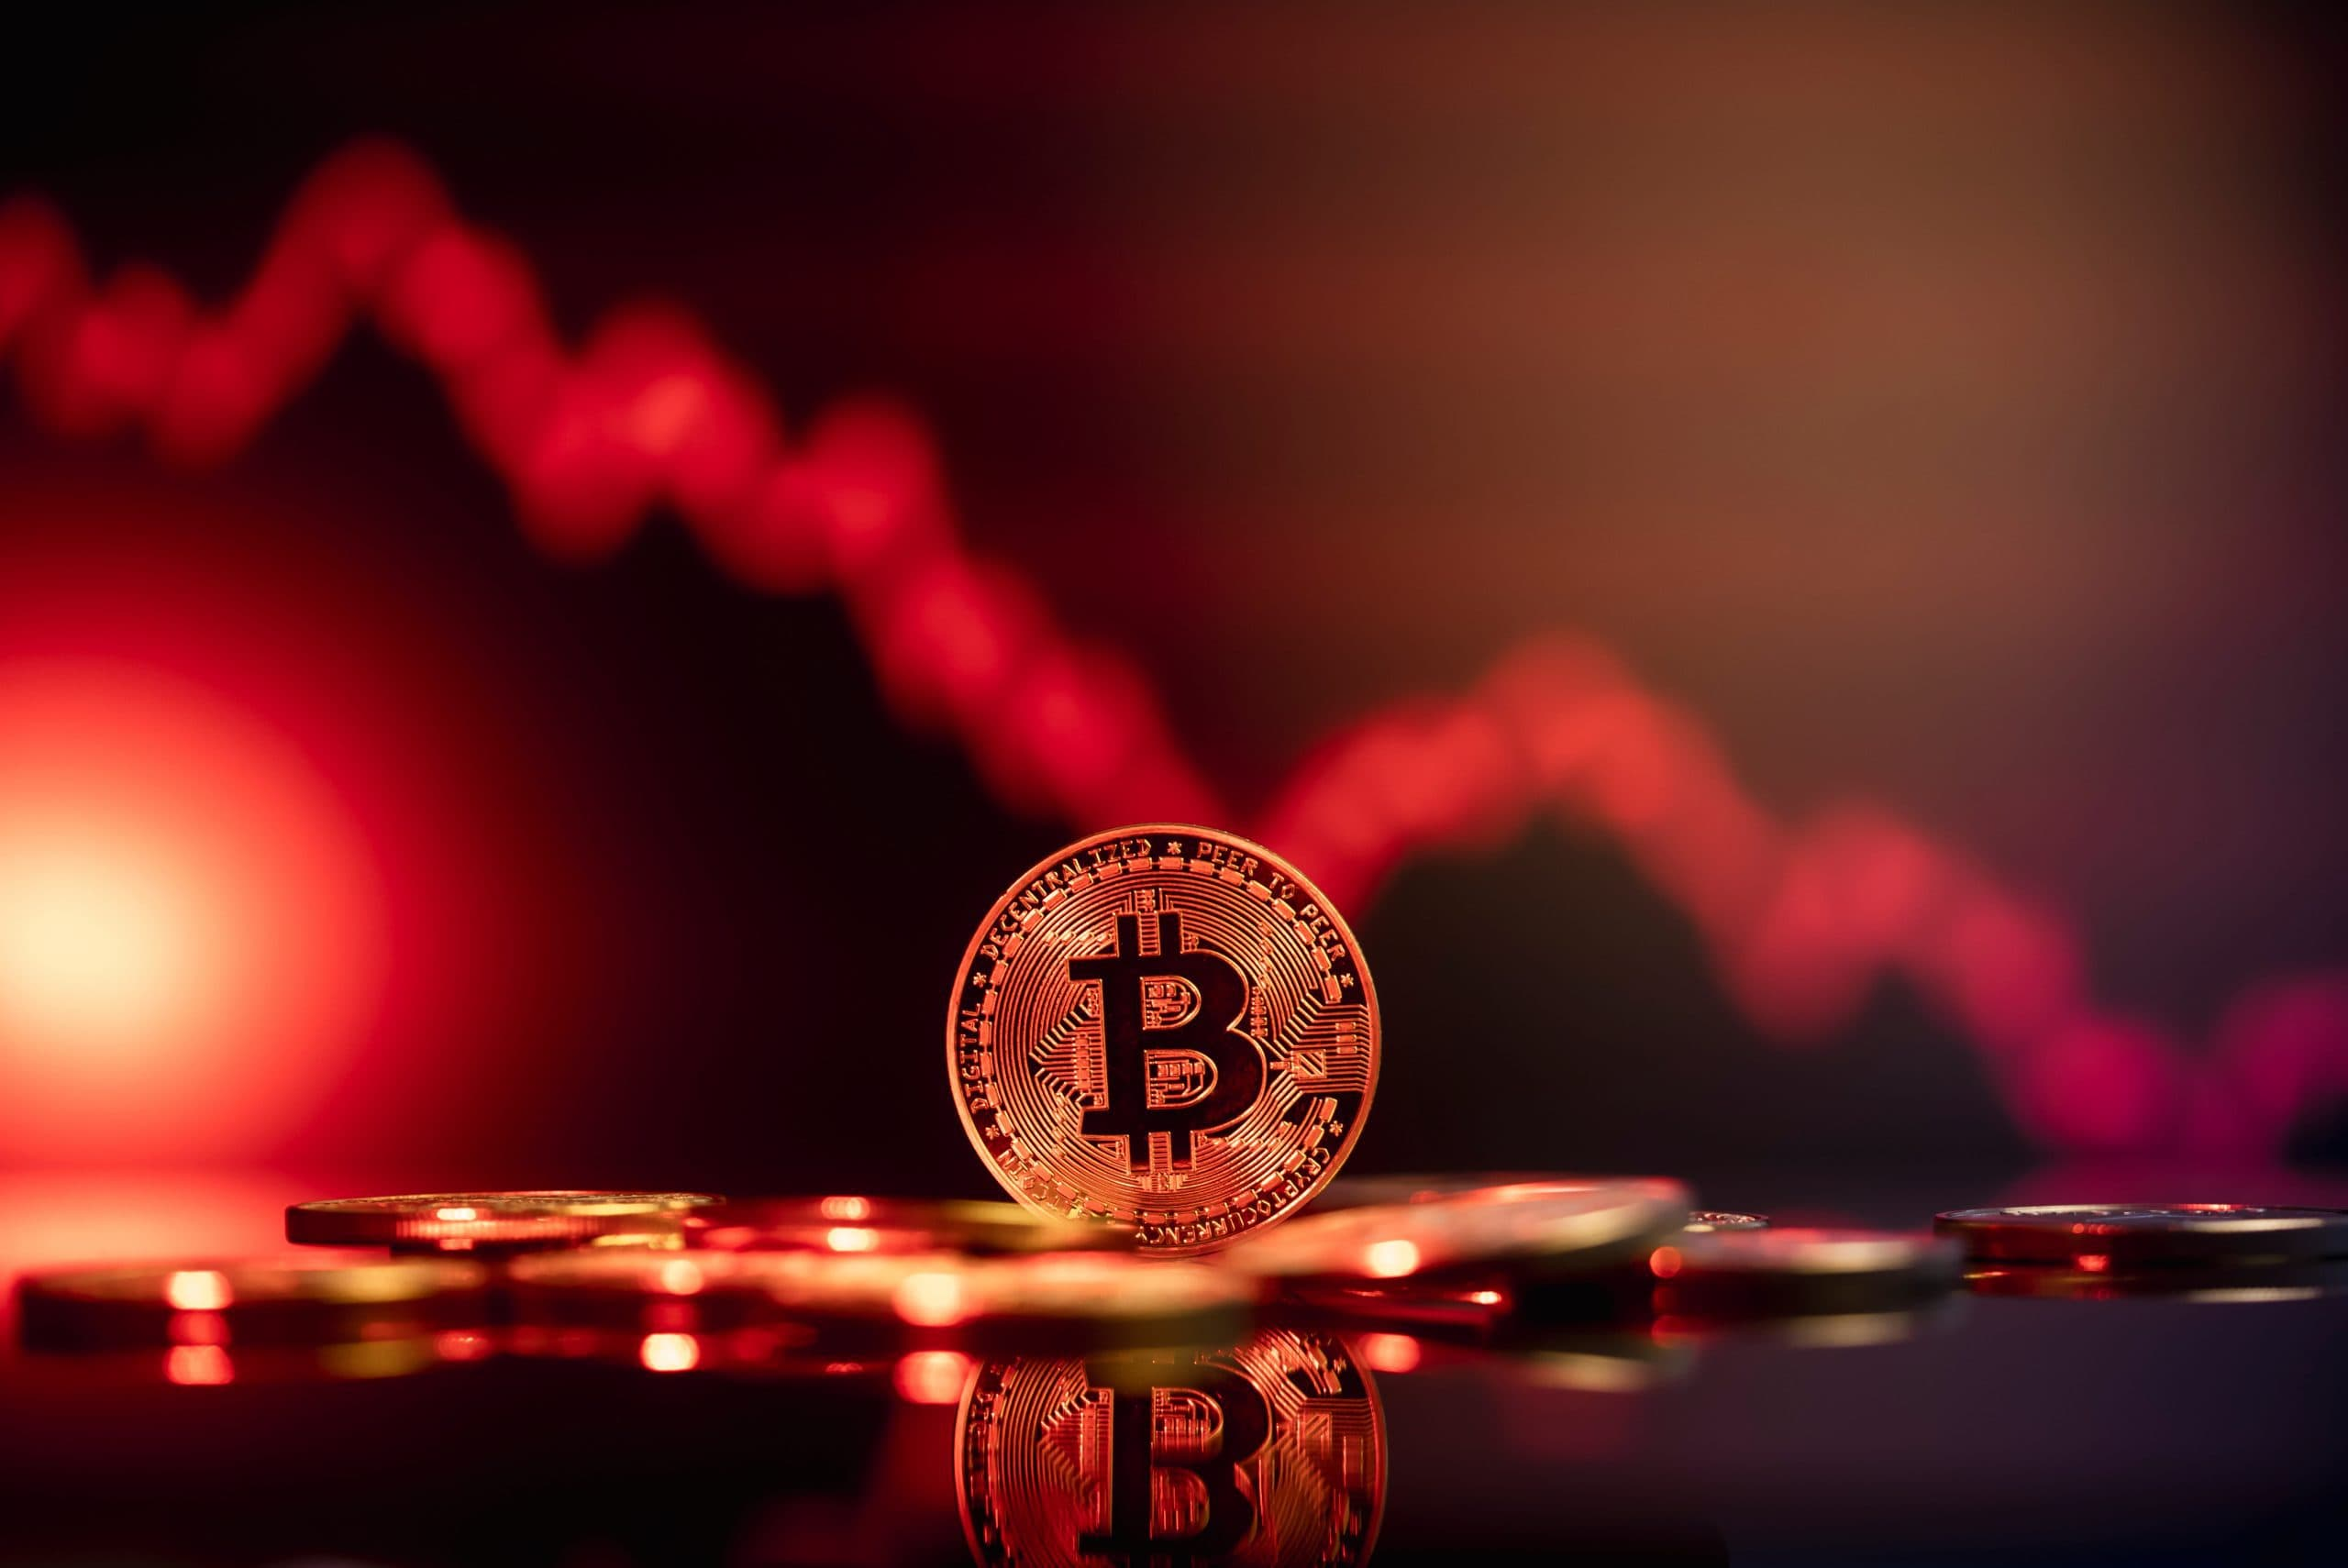 BTC crashes to $ 8,200 – what was going on, Binance?